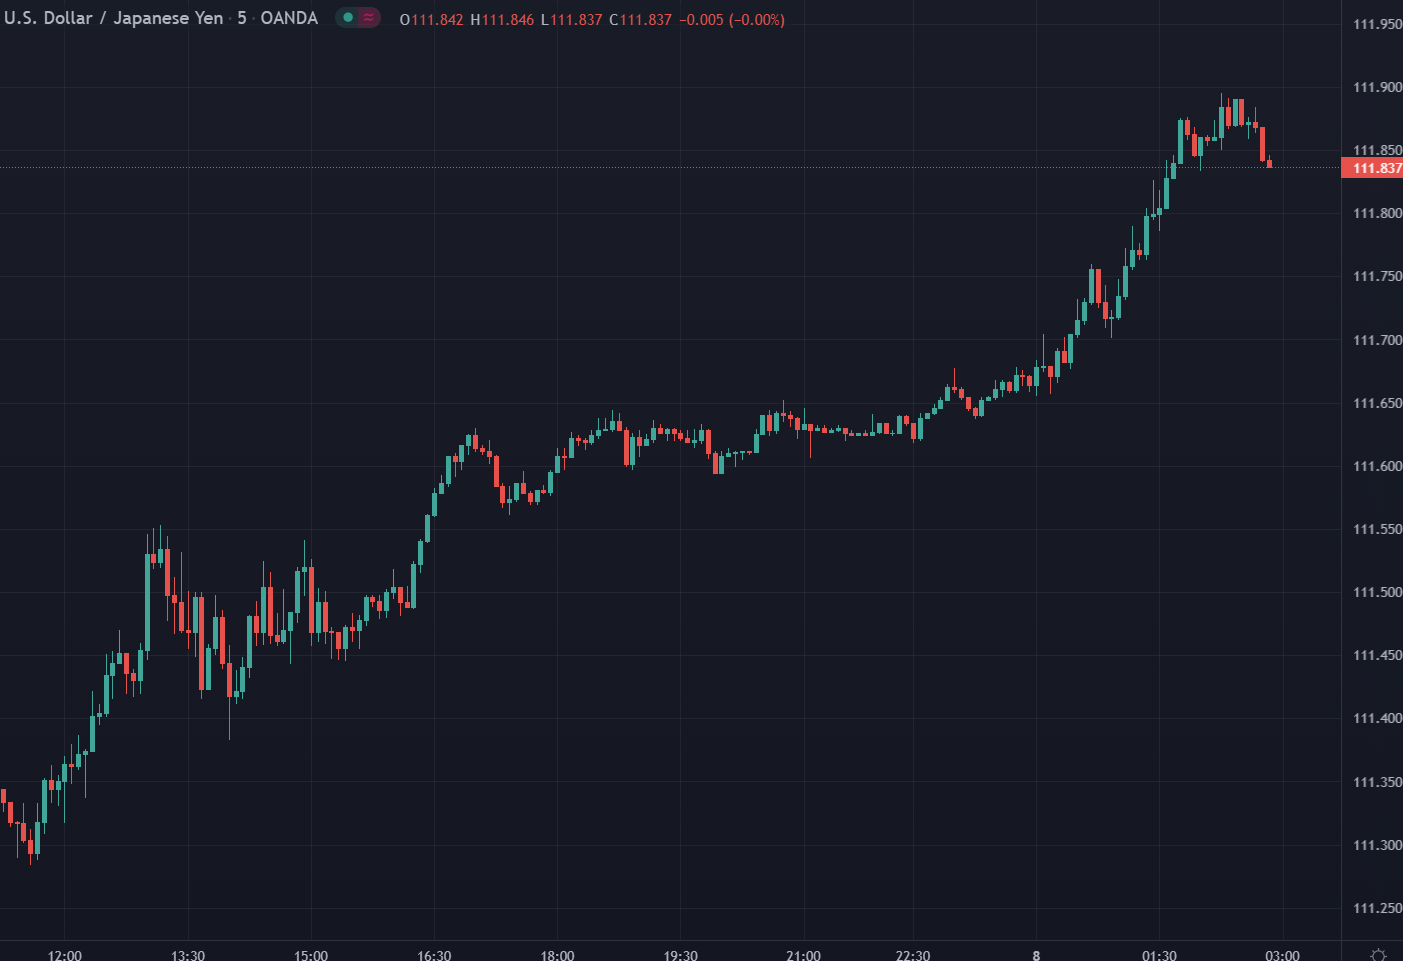 ForexLive Asia FX news wrap: Yen crosses rise further